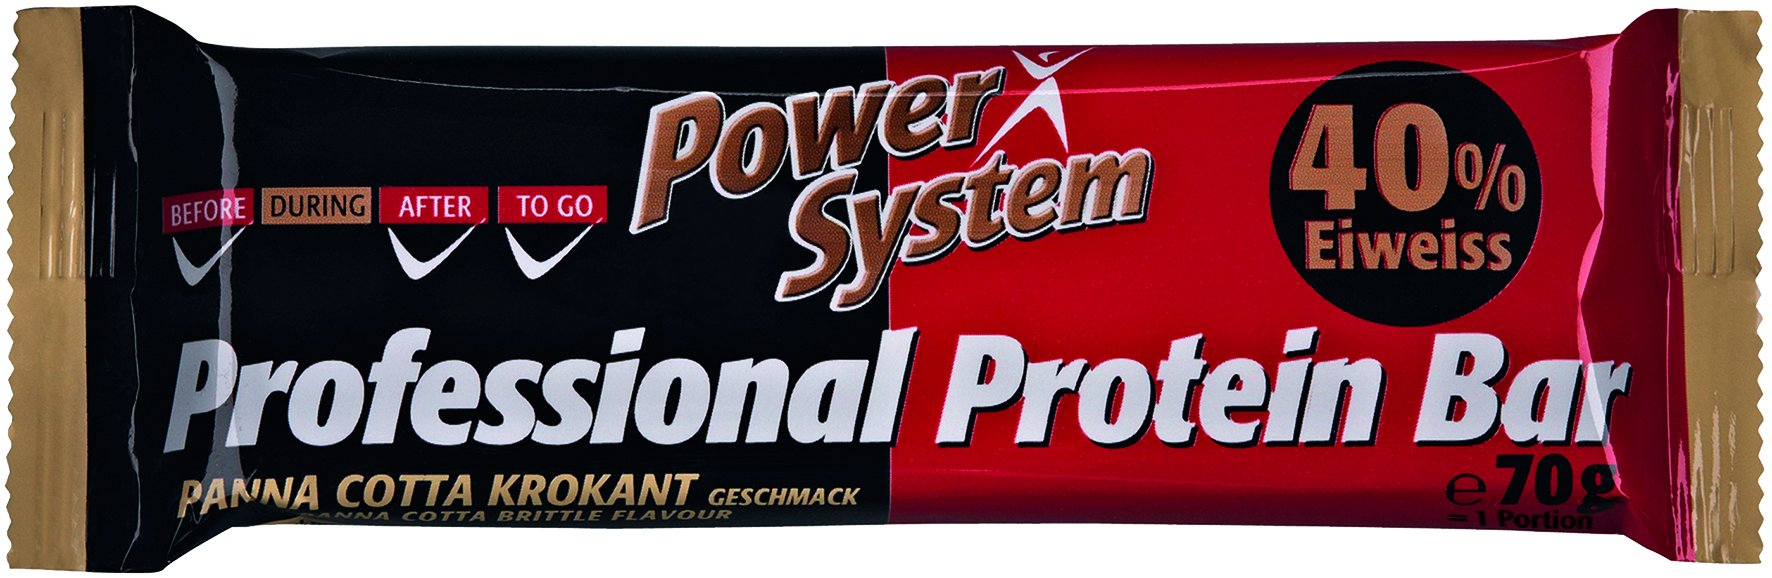 Power System Professional Protein Bar 40% Panna-Cotta Brittle 70g